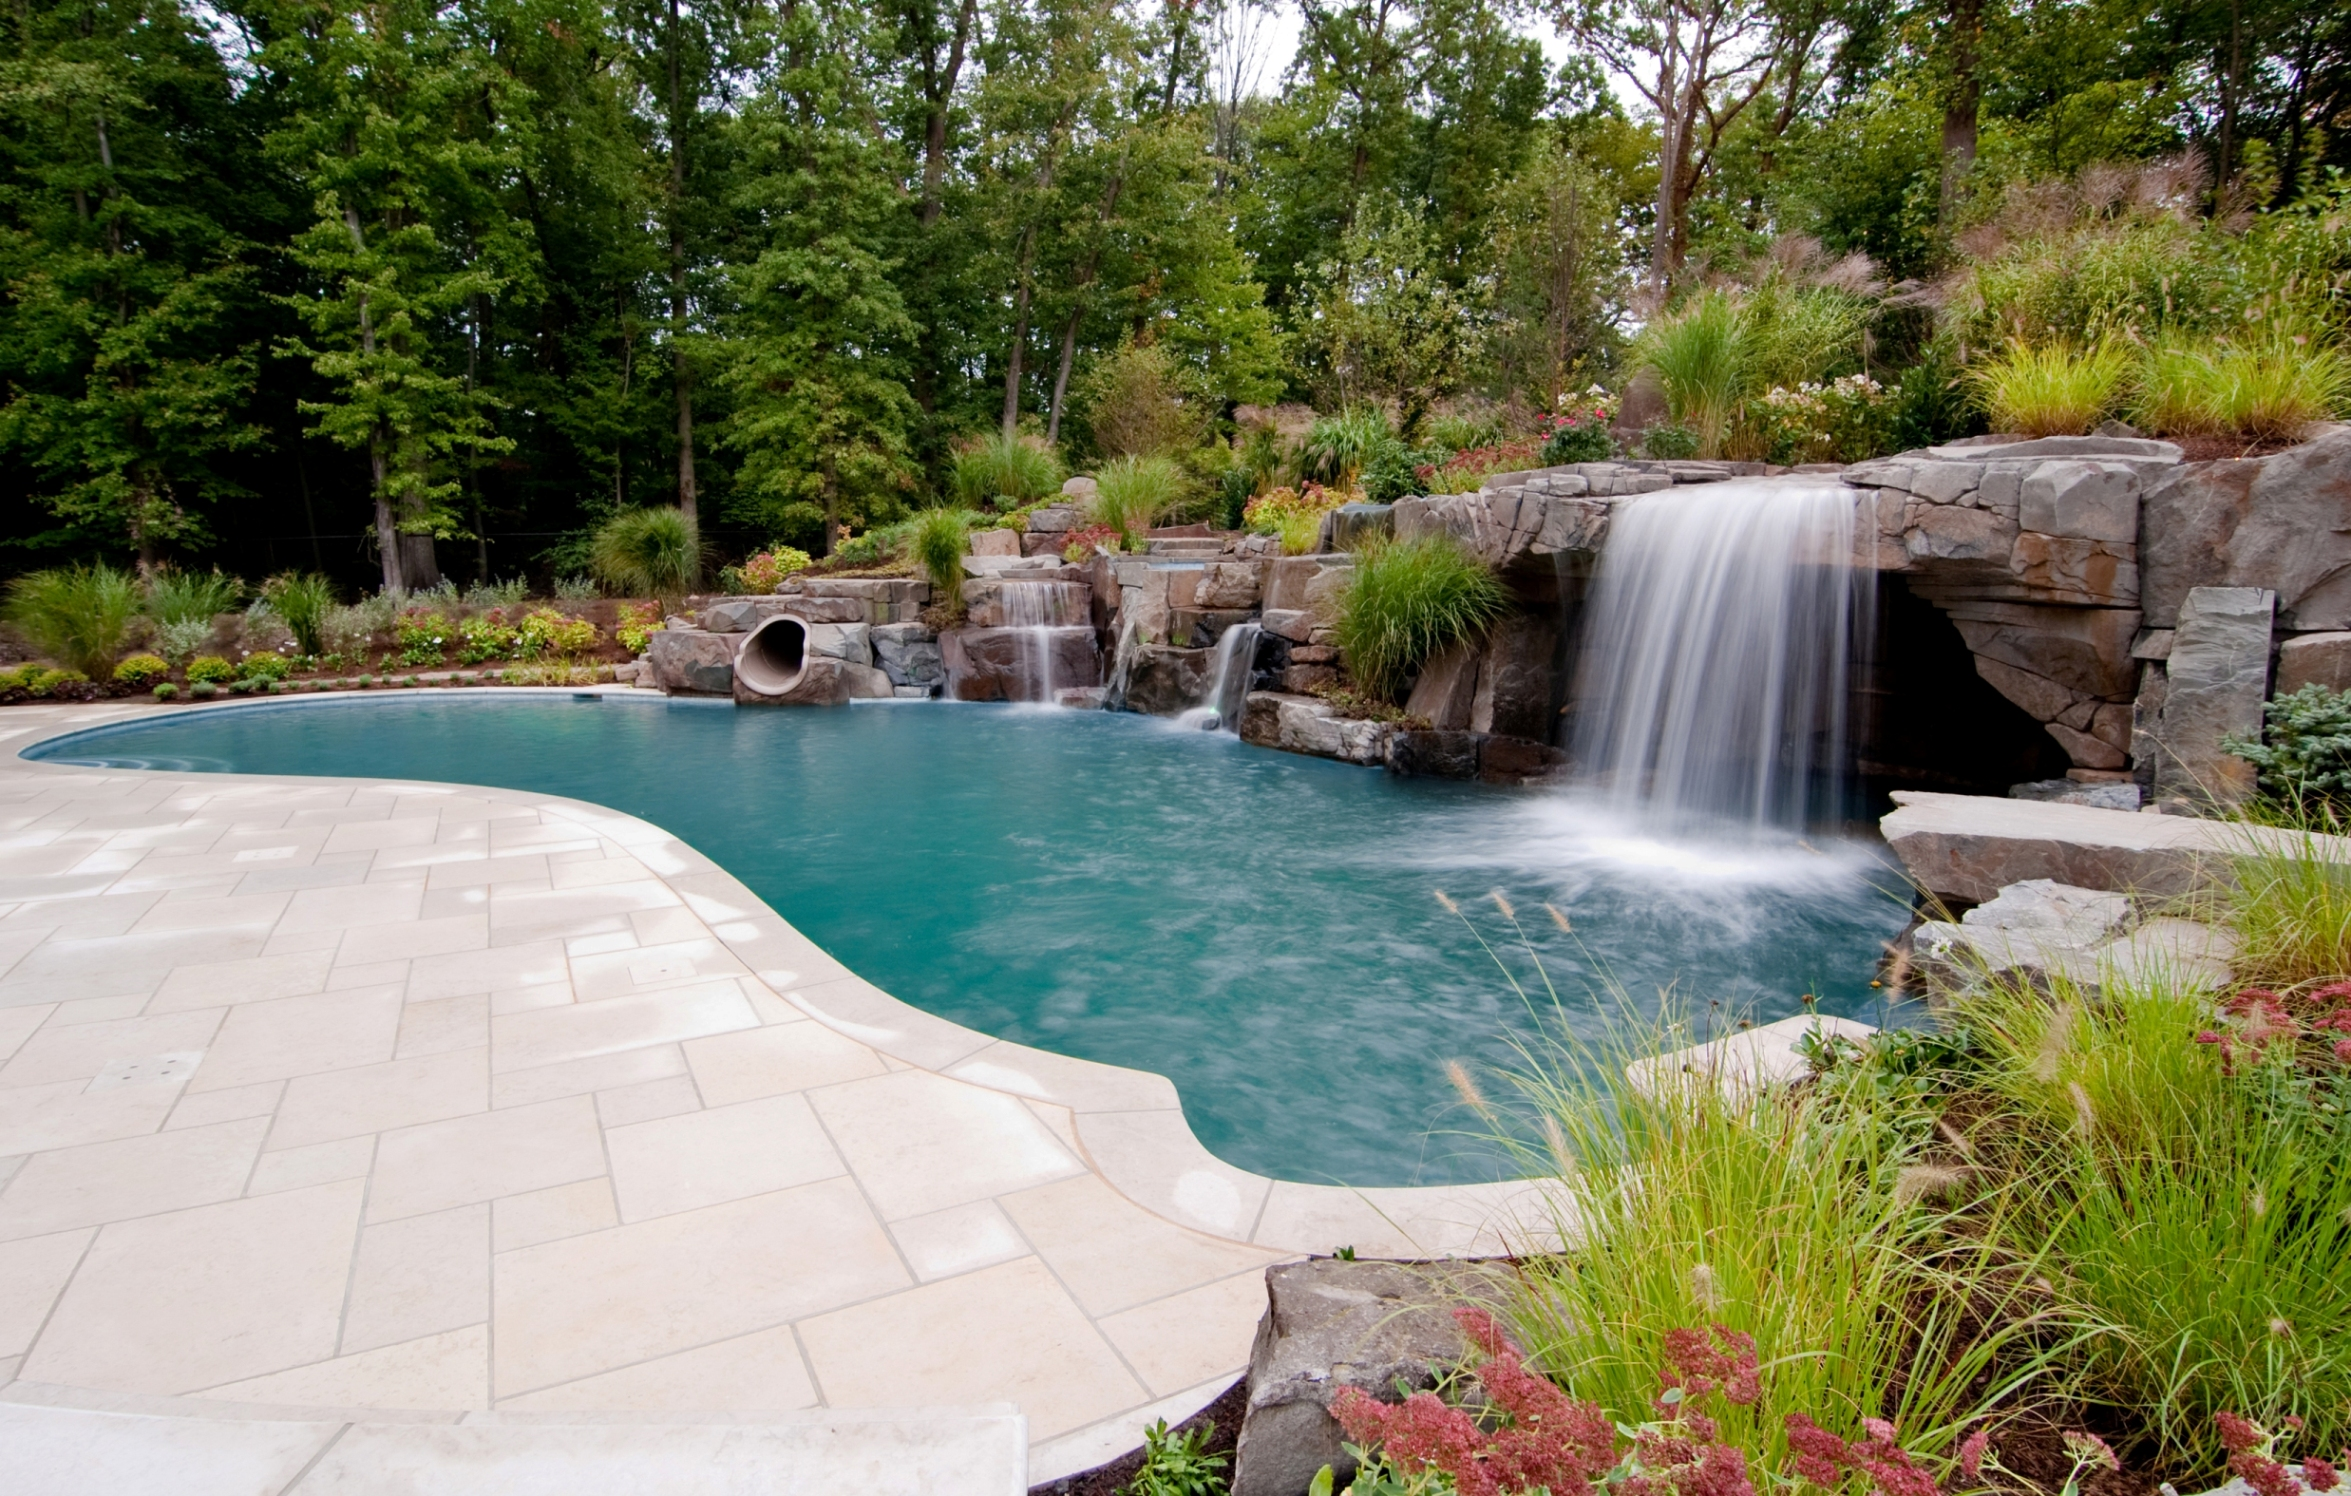 Piscinas Rusticas New Jersey Inground Pool Company Earns International Award